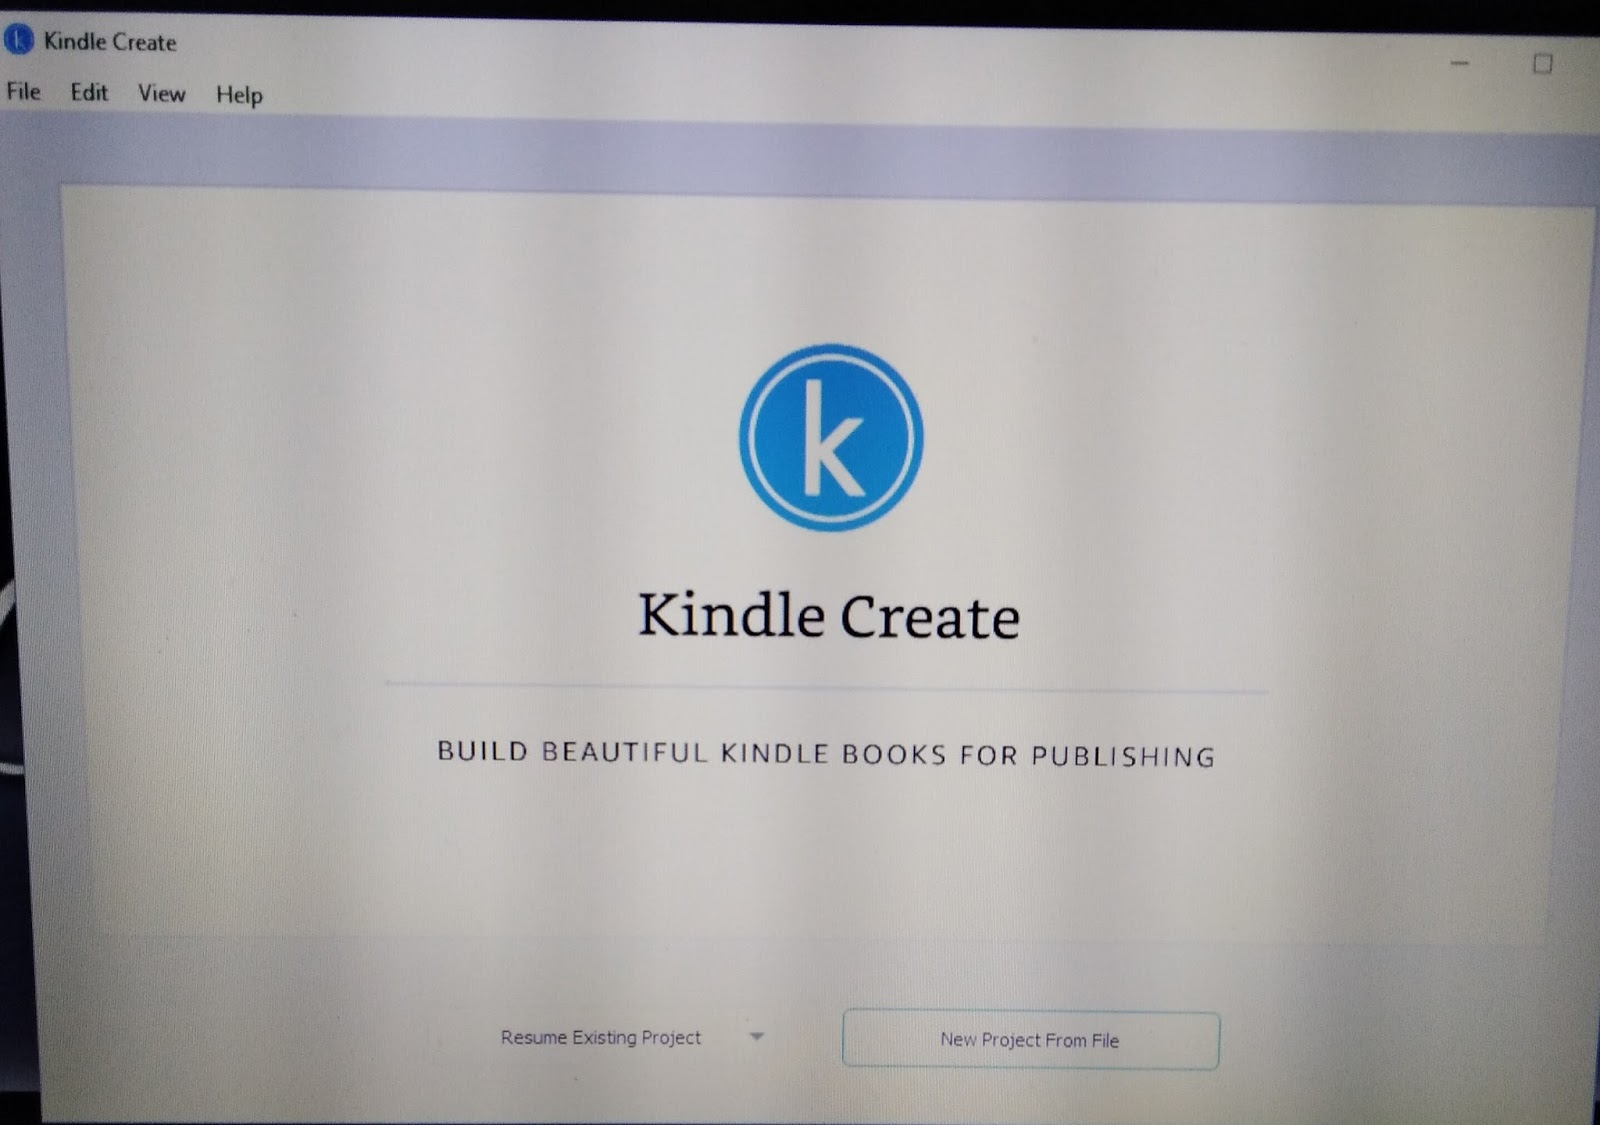 Author Katie Mettner: Kindle Create ~ The Good, The Bad, and